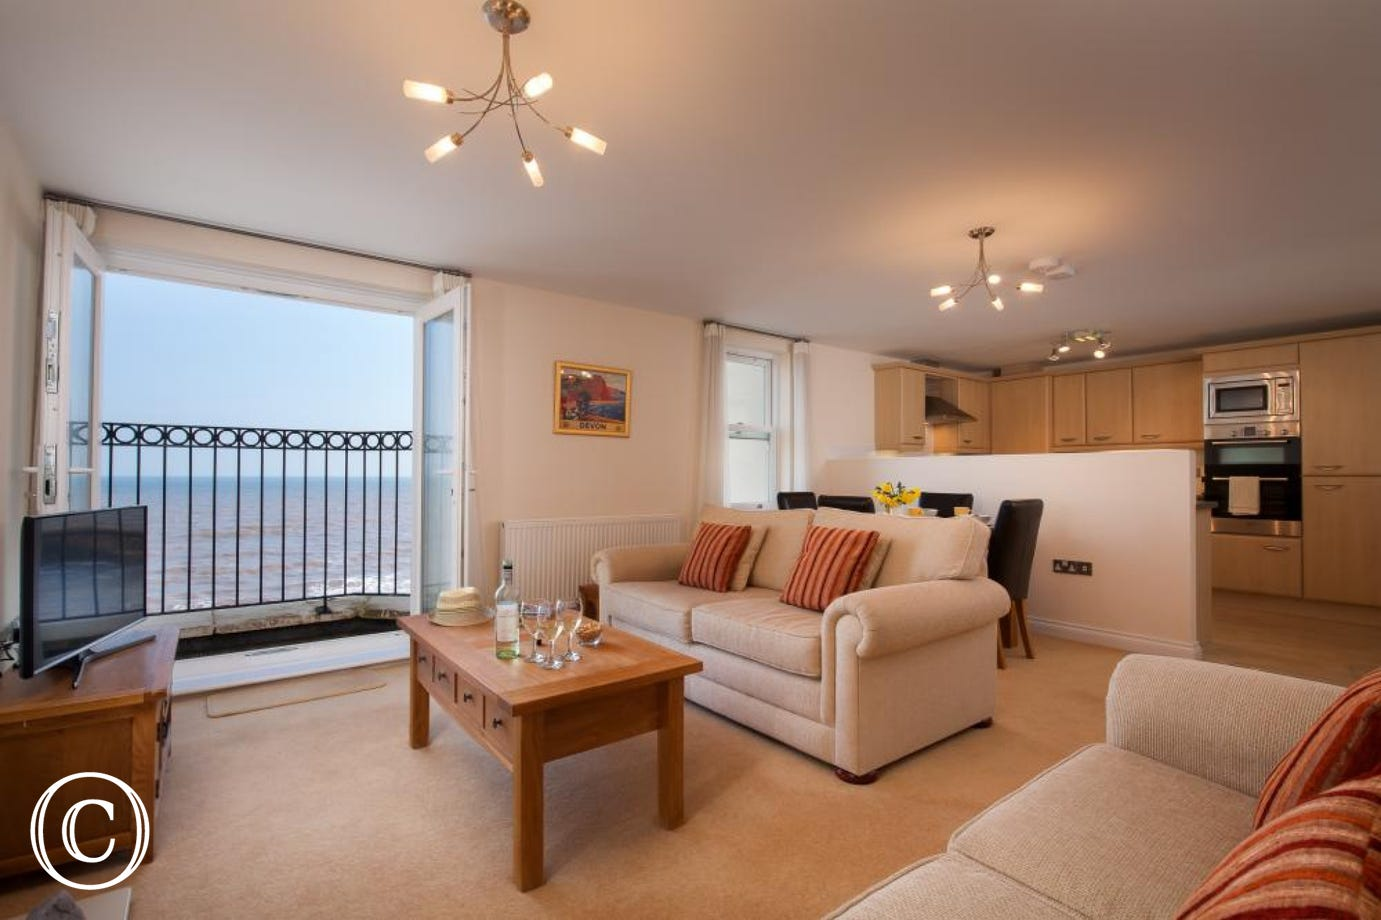 Living Room at 16 Great Cliff in Dawlish, South Devon